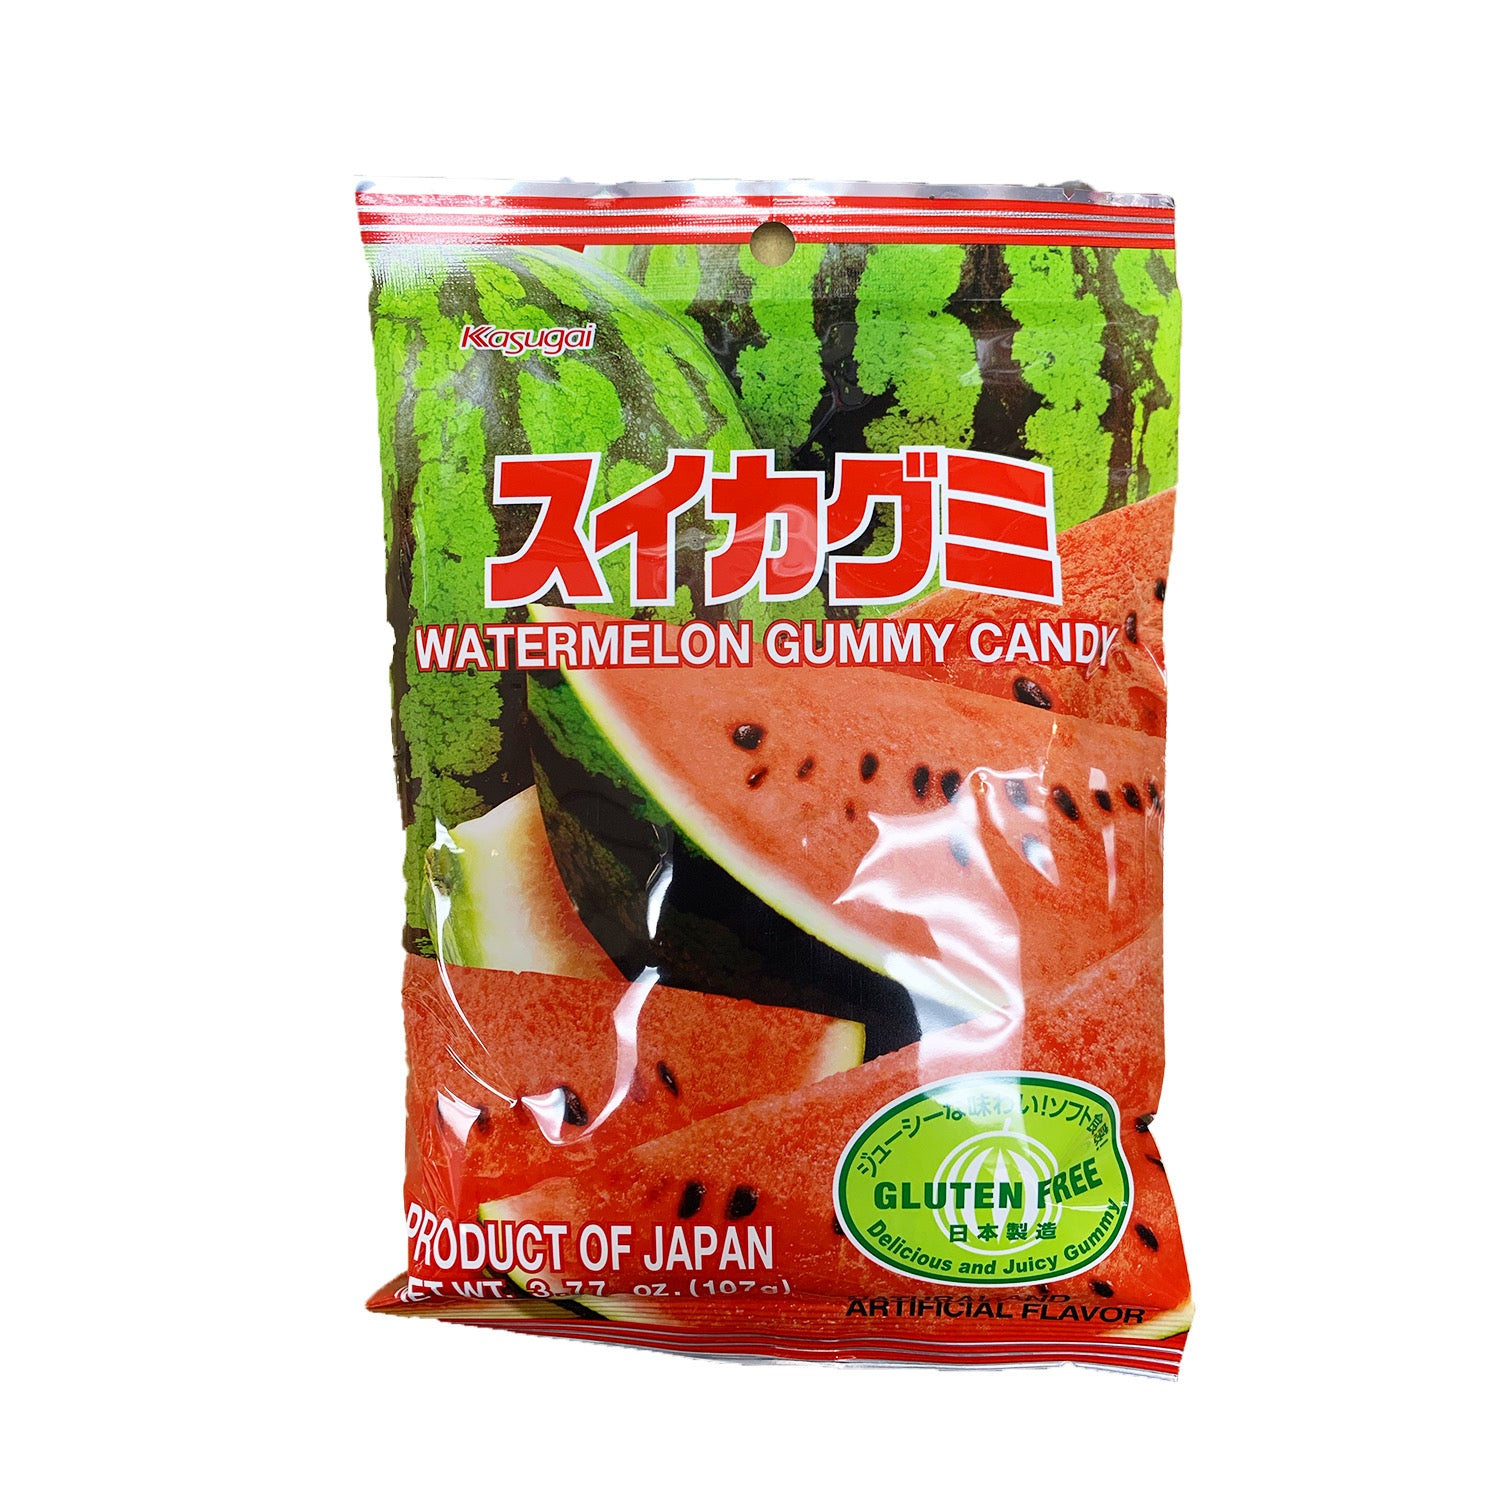 Kasugai Watermelon Gummy Candy 3.77oz